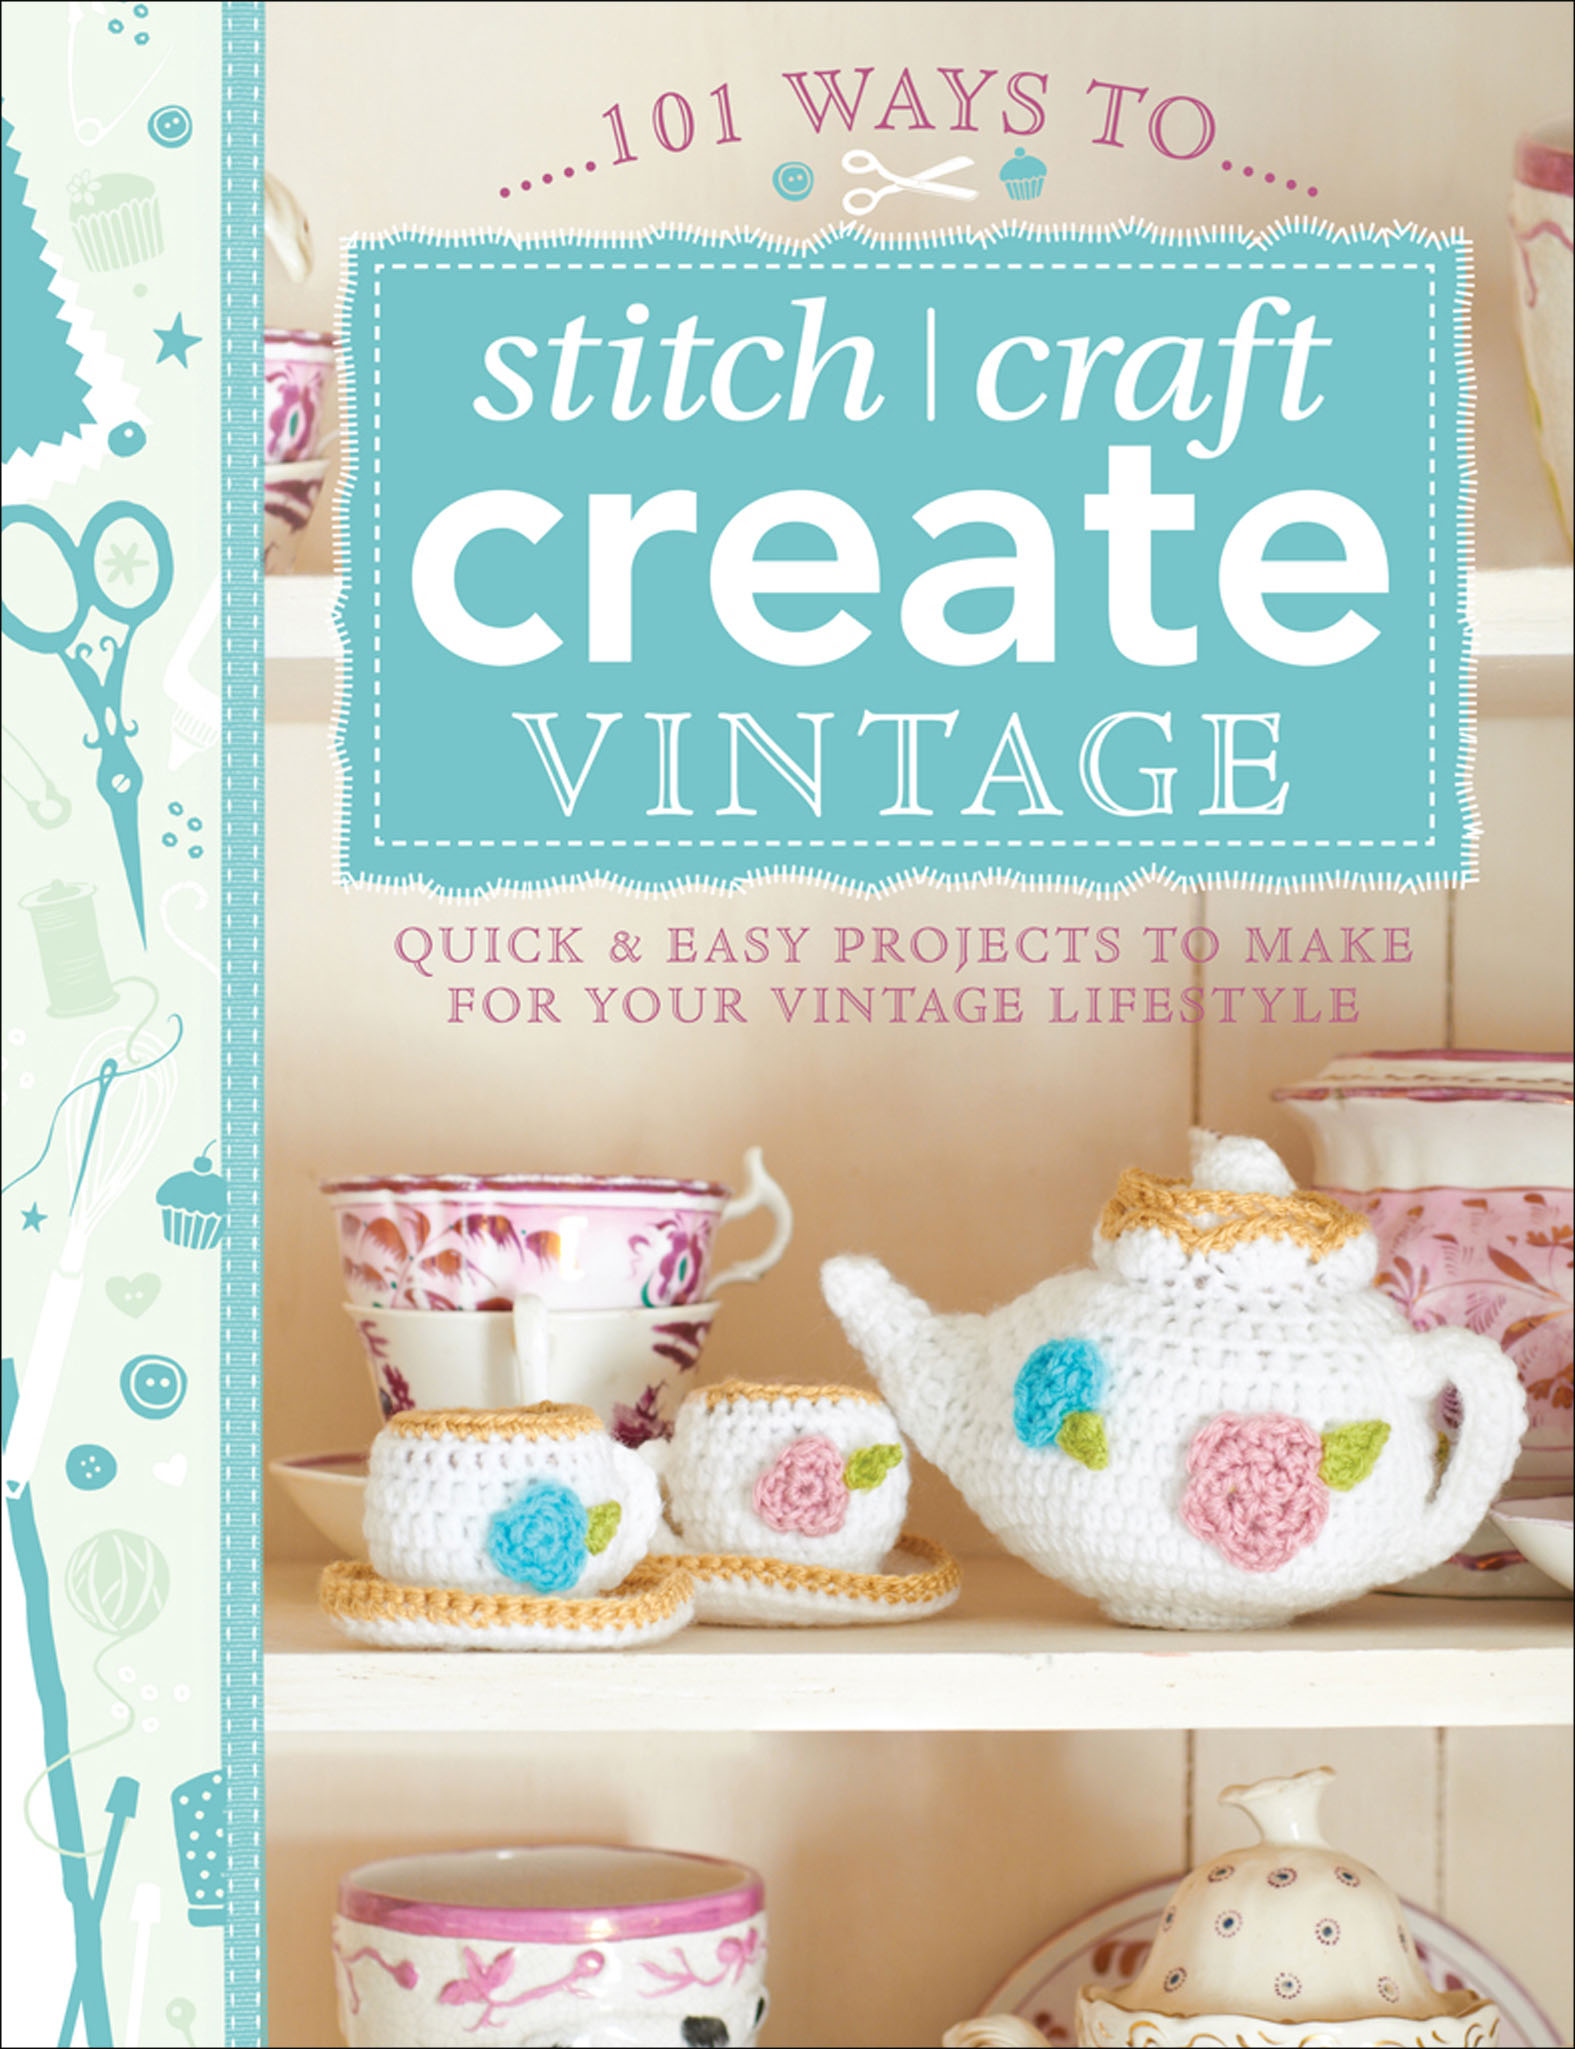 101 Ways to Stitch, Craft, Create Vintage Quick & Easy Projects to Make for Your Vintage Lifestyle